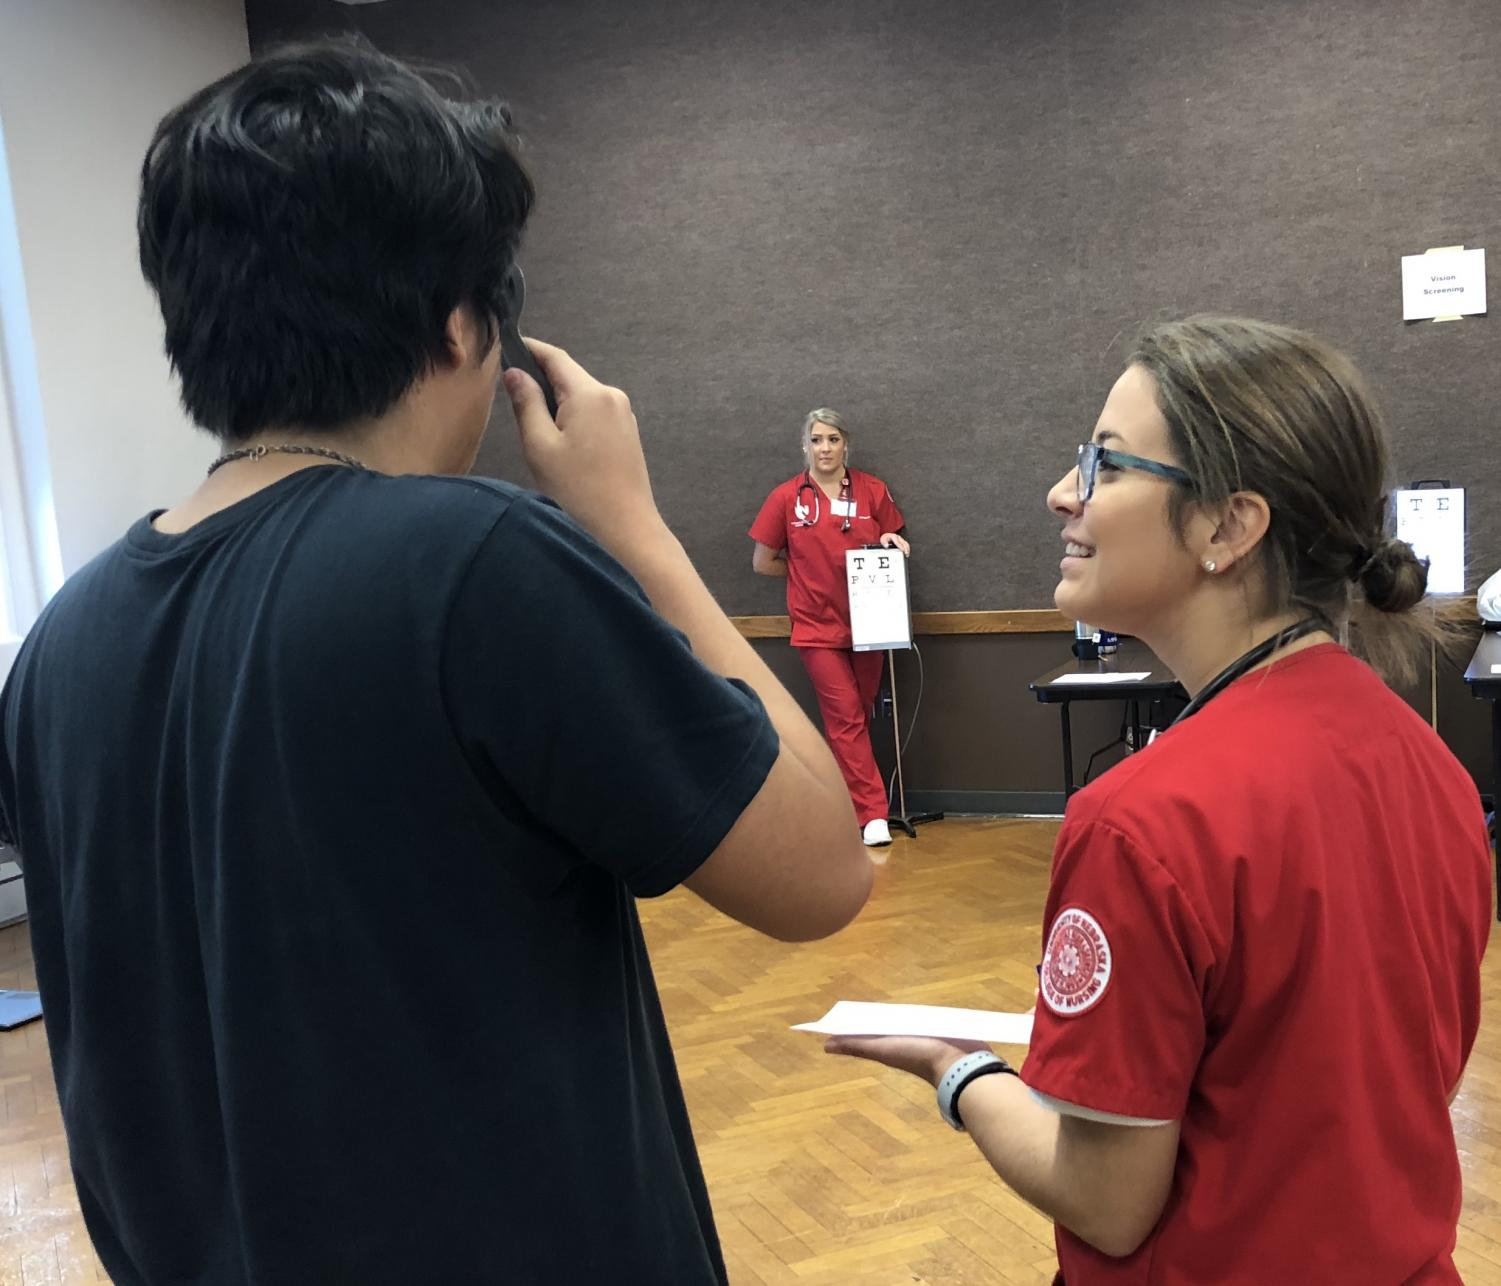 Sophomores and students new to LHS were excused from classes throughout the day on Wednesday, Sept. 26, 2018 to go through an annual health screening in Room 300. Medical staff checked vitals, vision, and hearing.